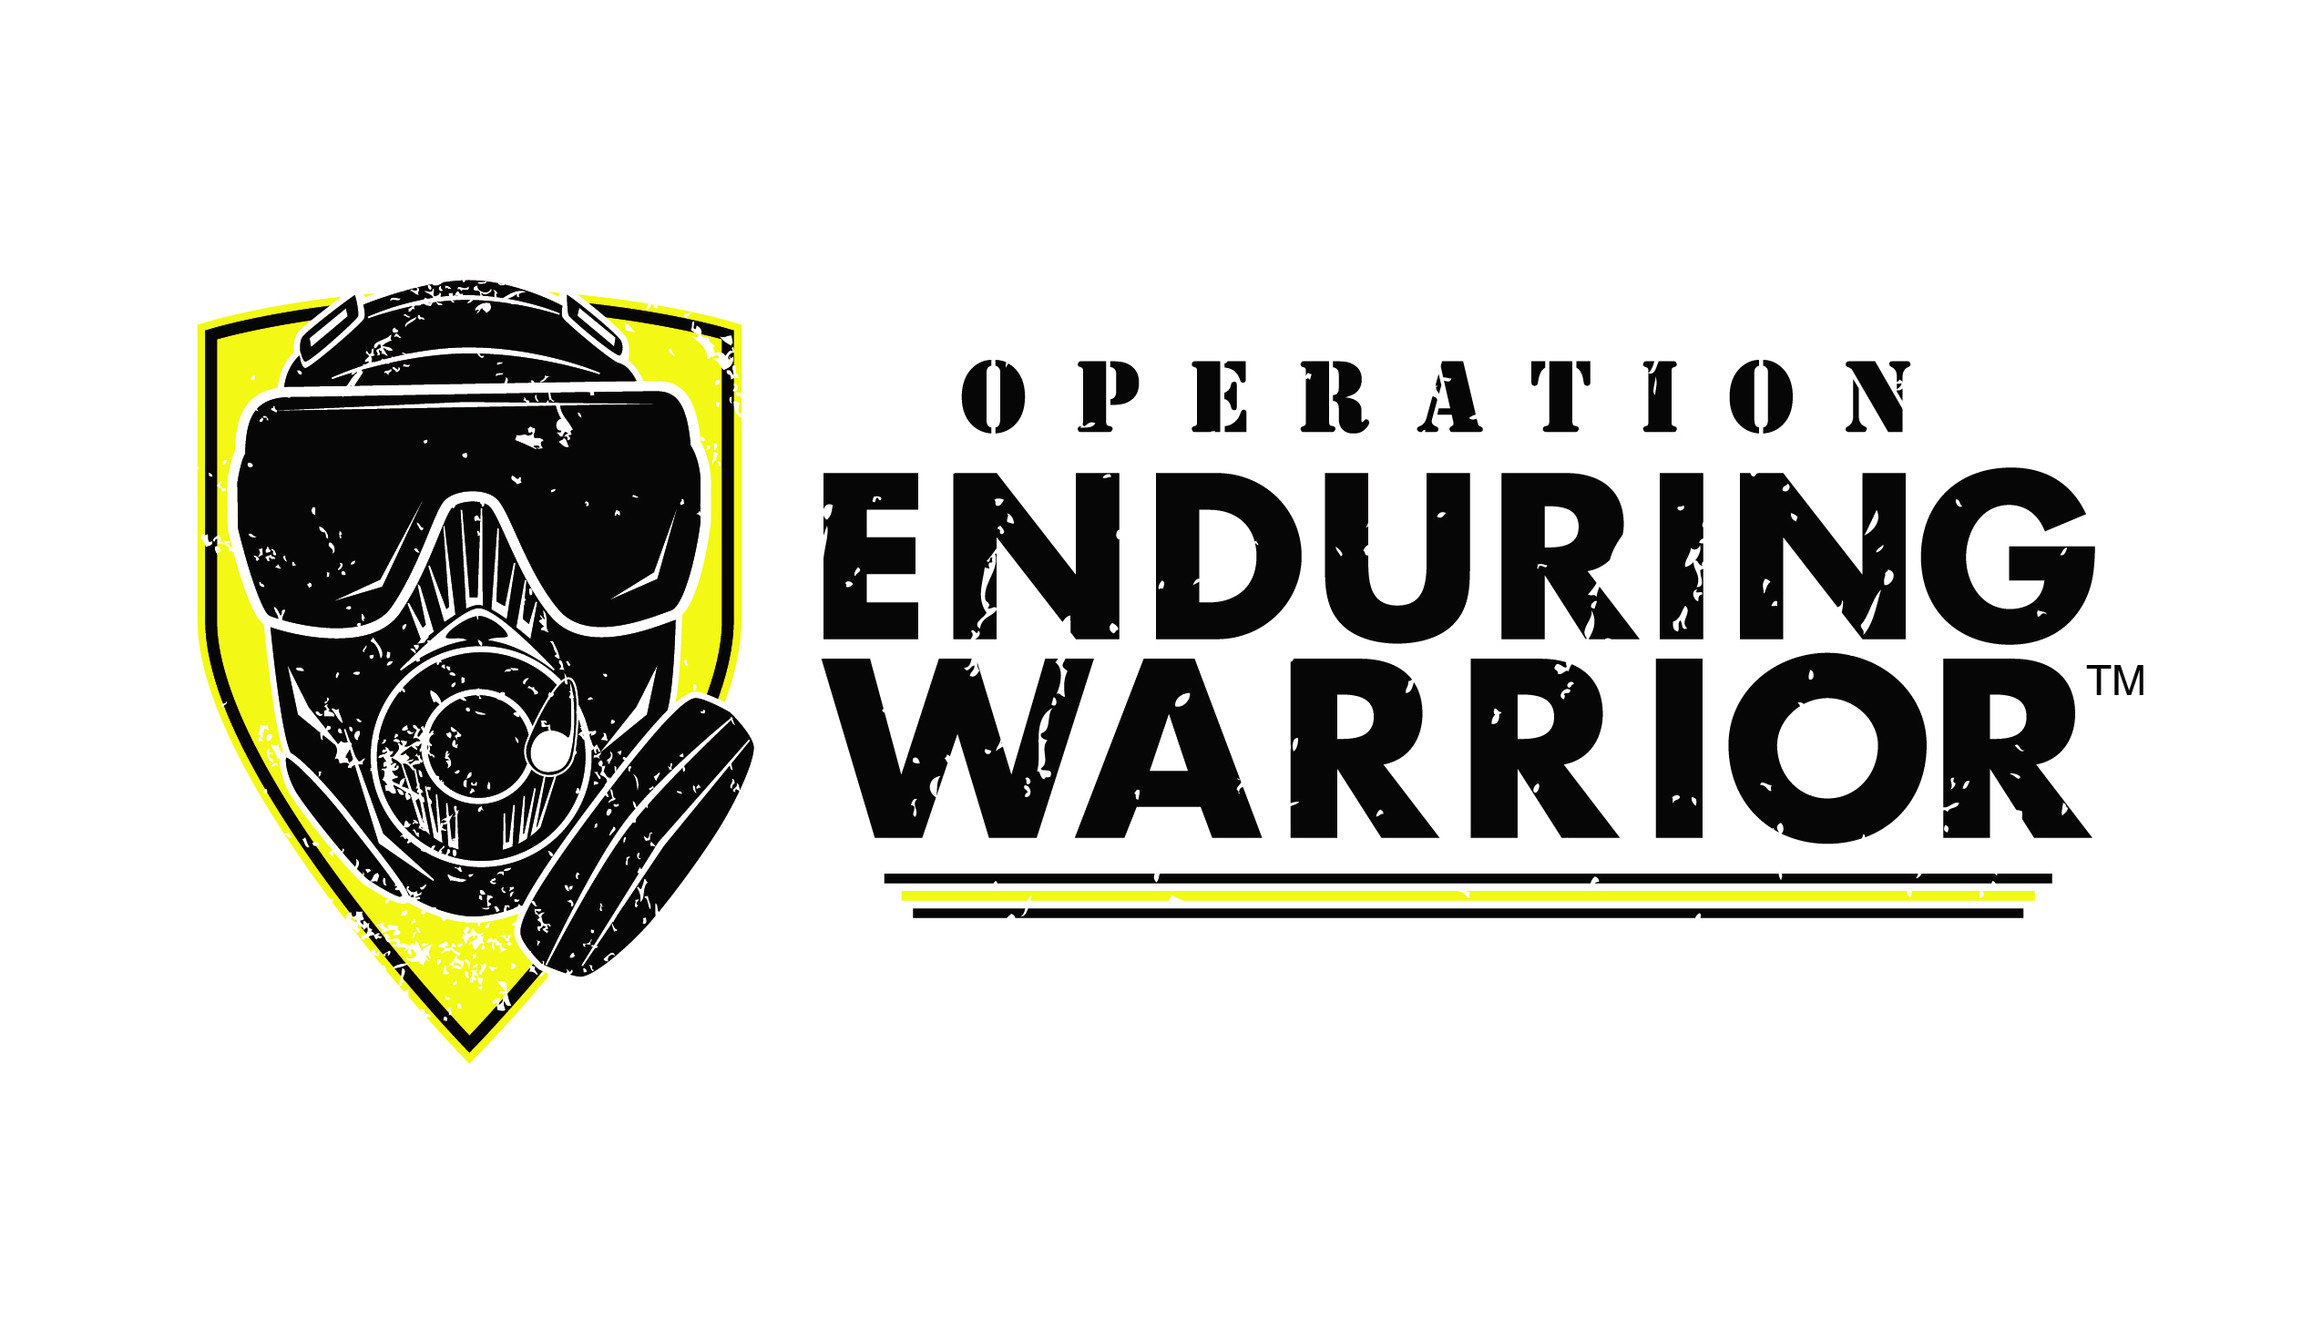 Operations Enduring Warrior